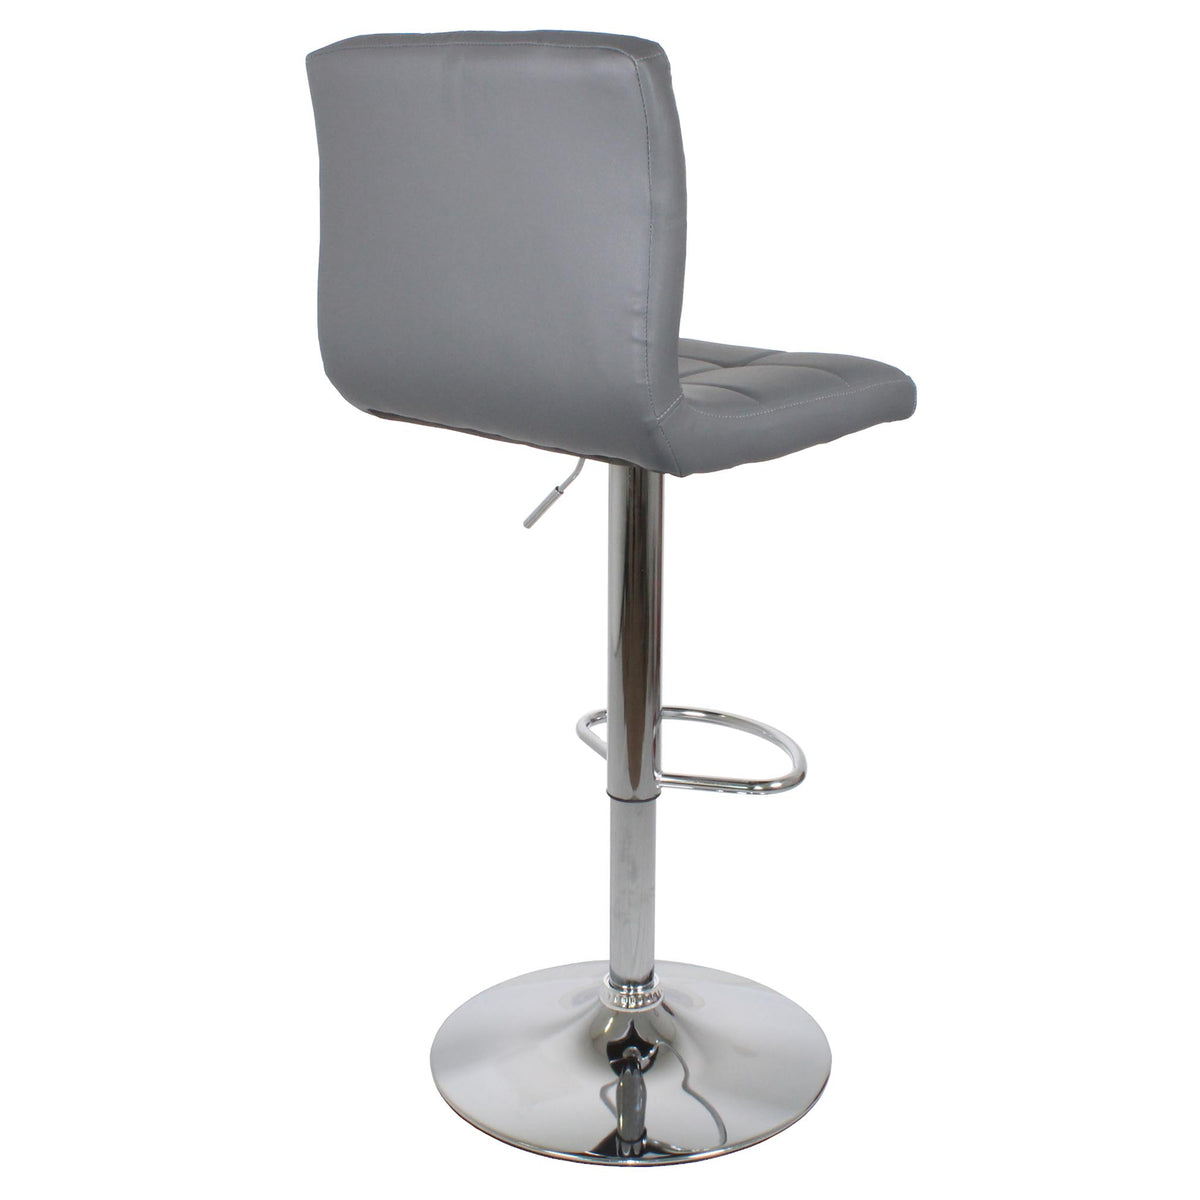 Back view of the Sky Grey Elton Adjustable Breakfast Bar Stool with chrome metal base